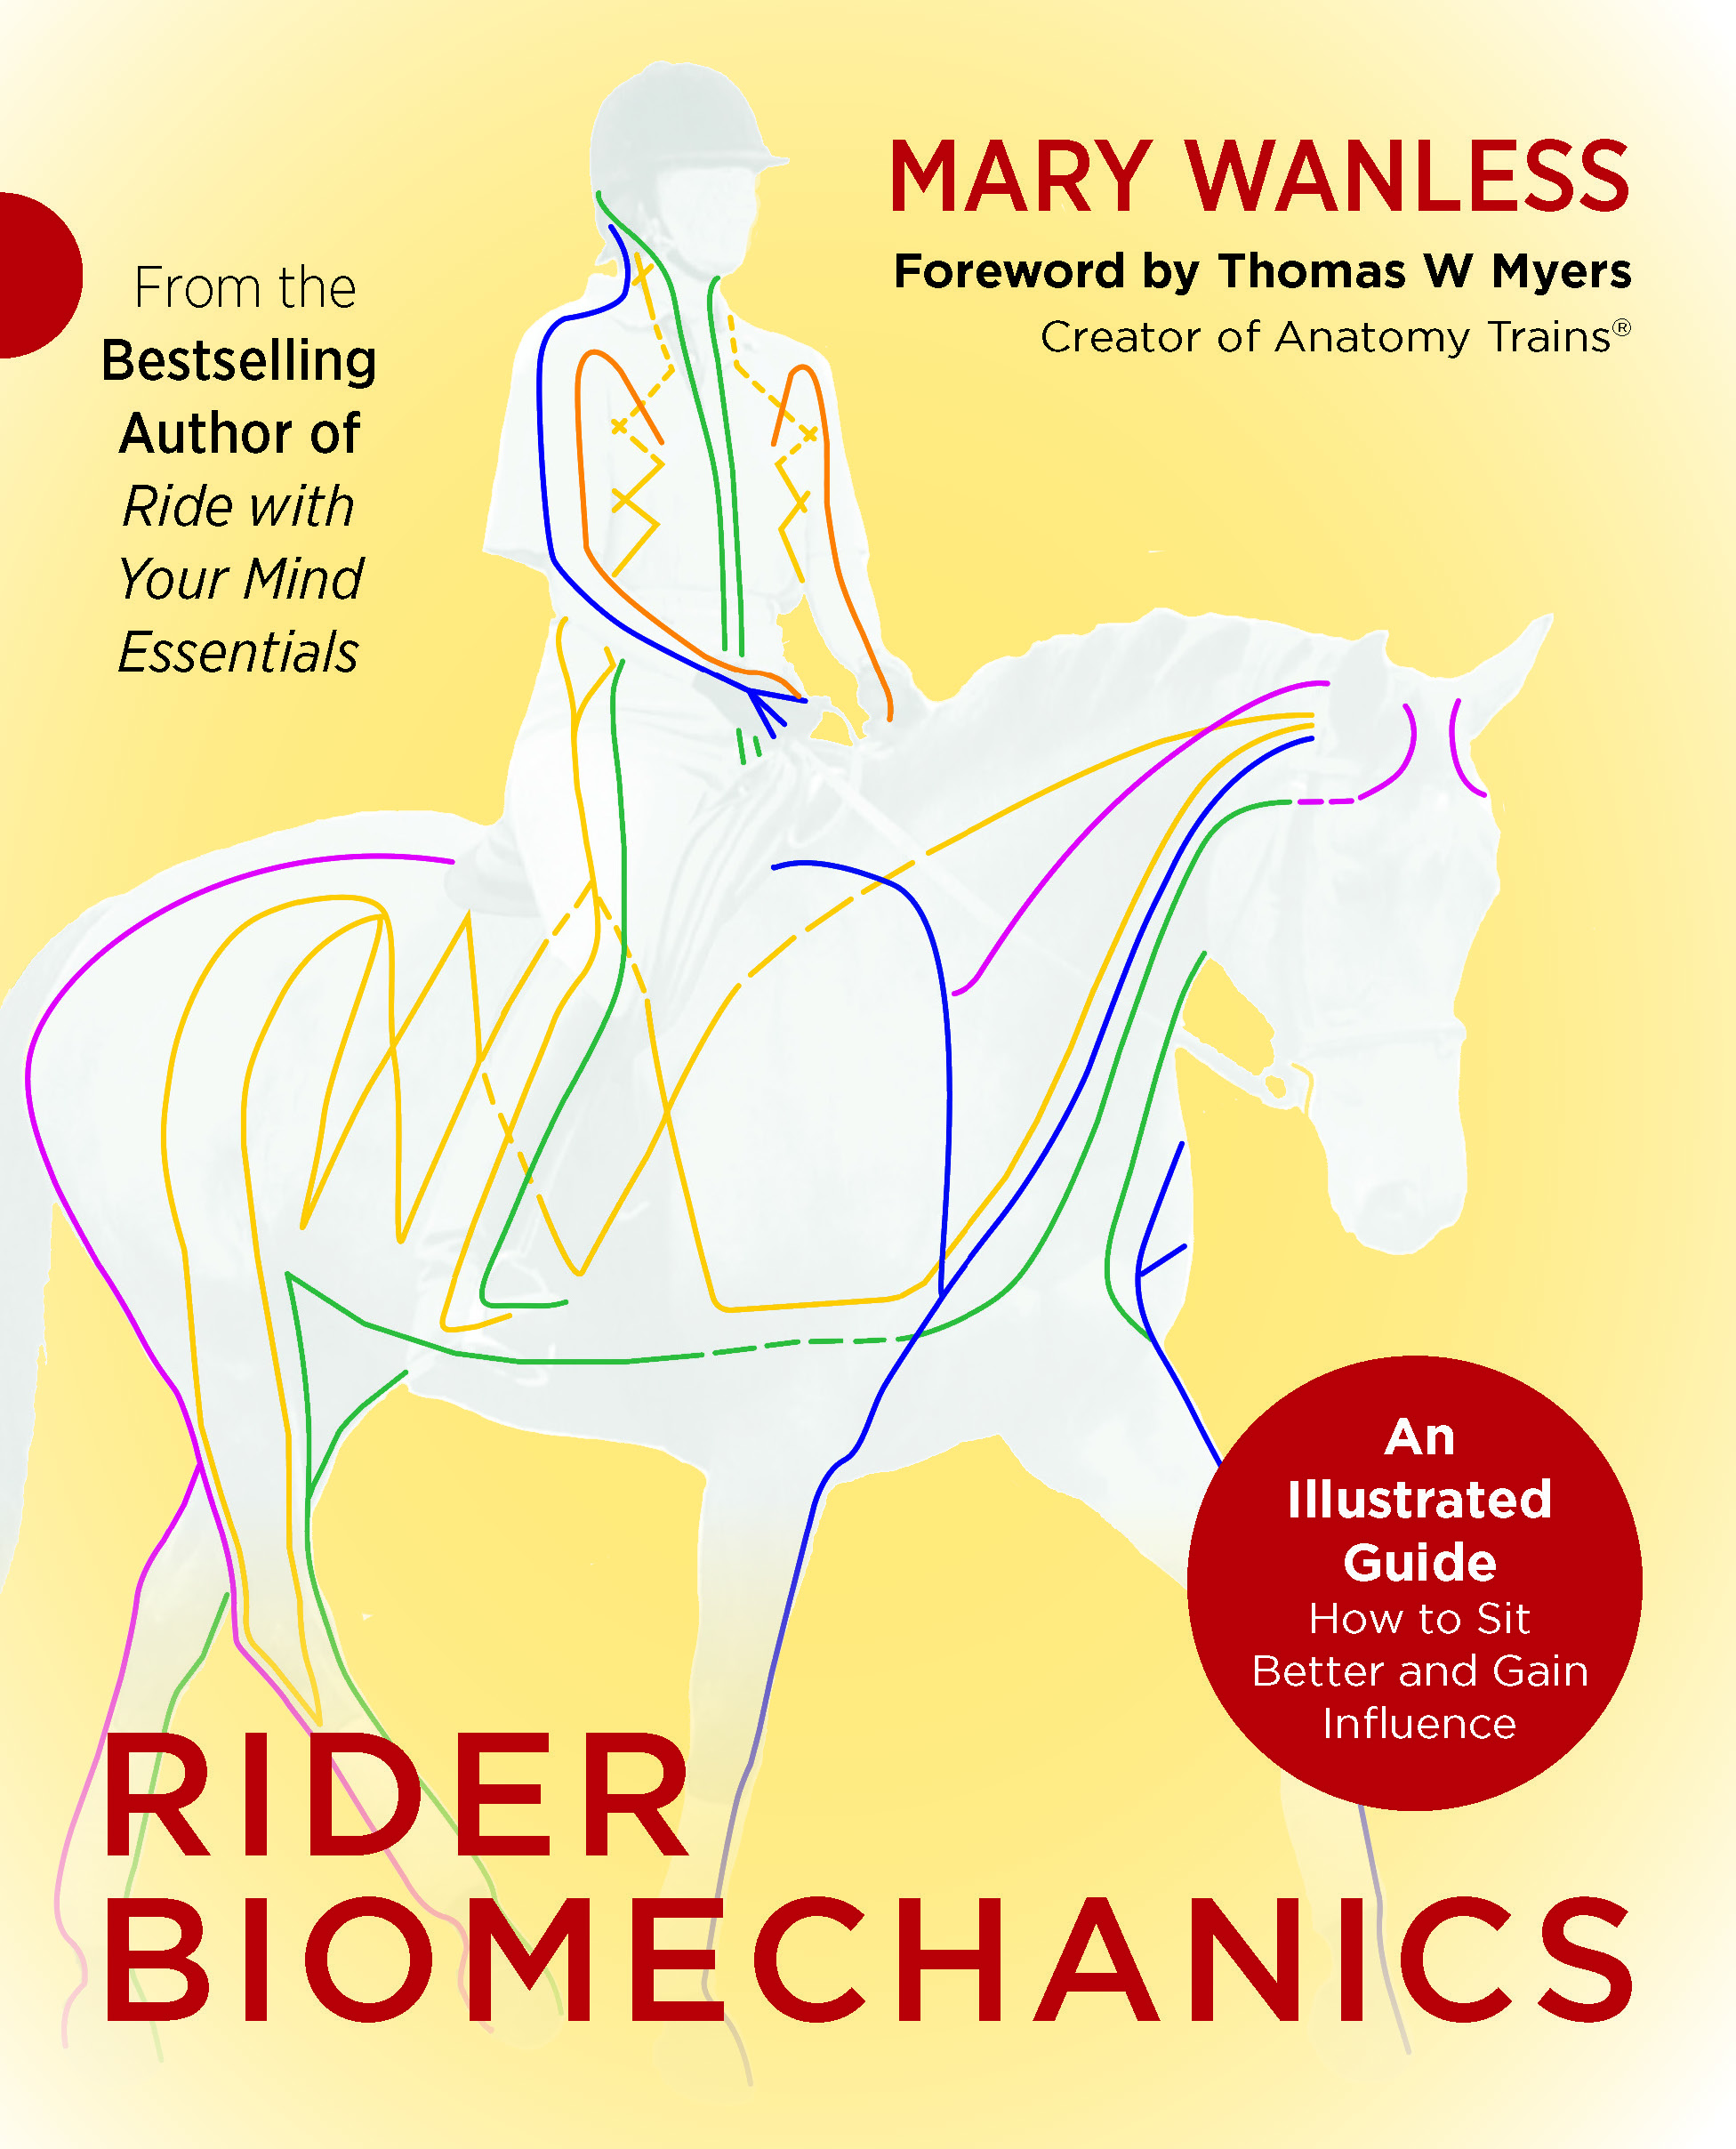 RIDER BIOMECHANICS COVER